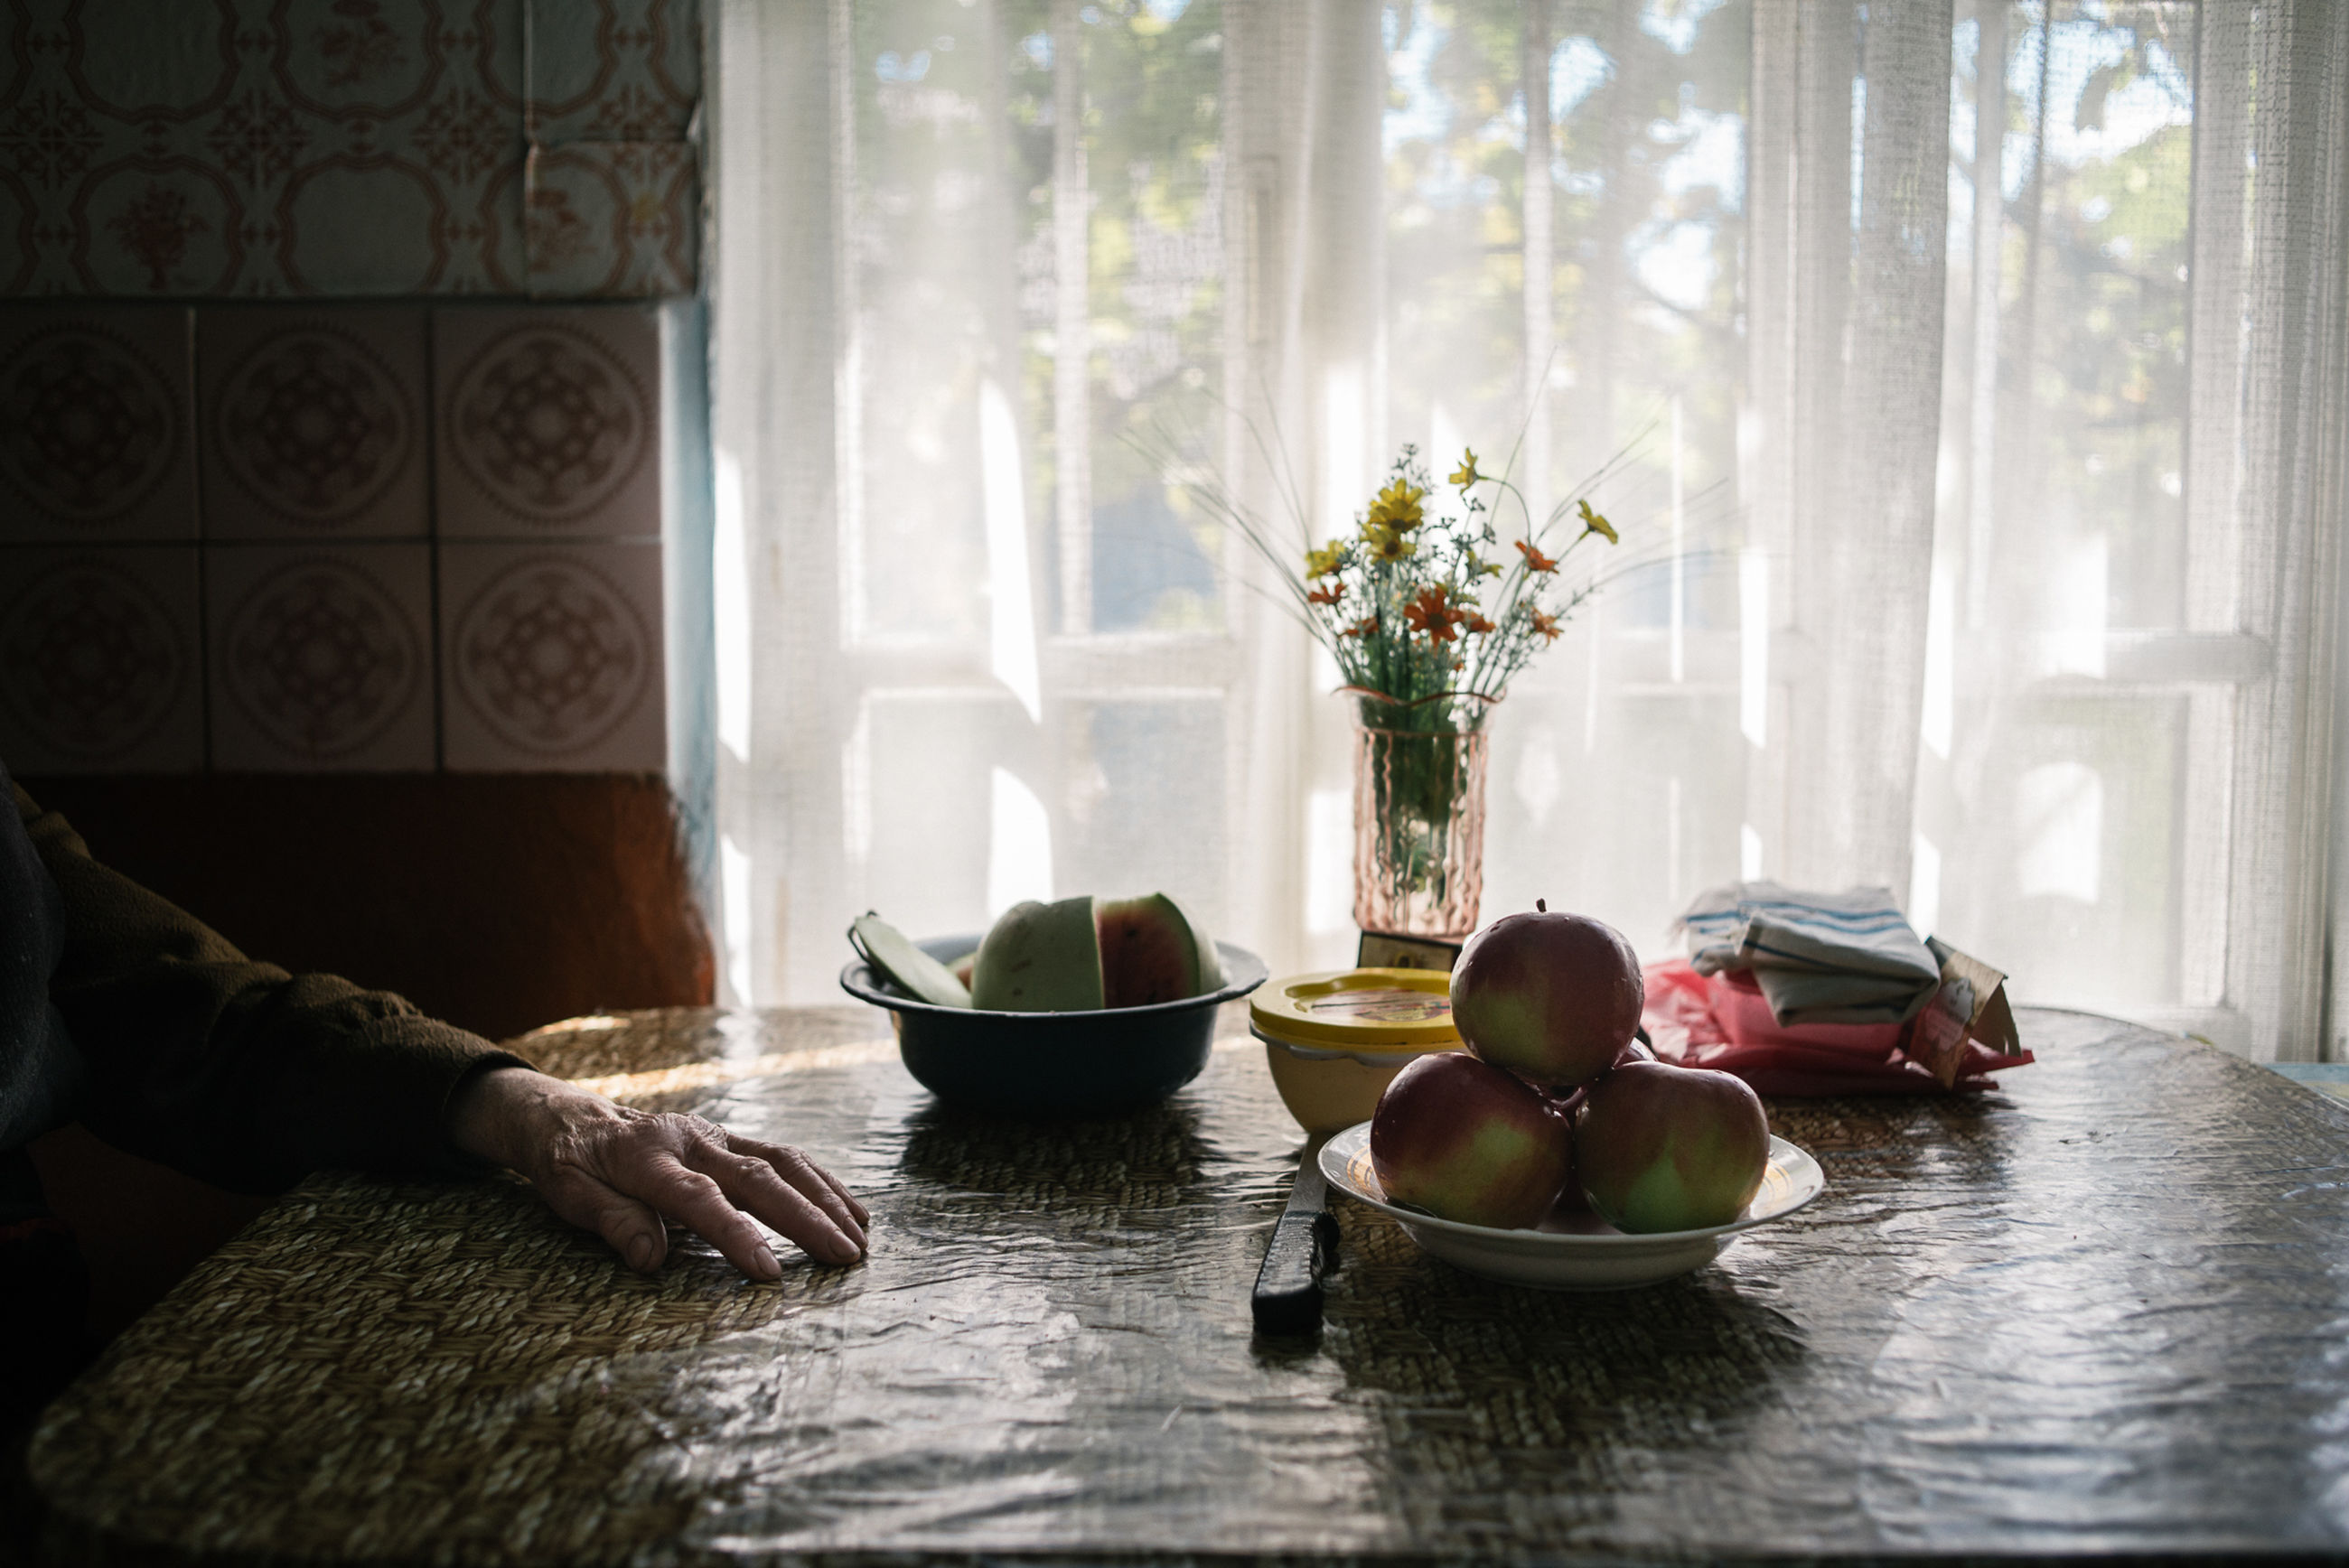 indoors, vase, window, table, curtain, food and drink, bowl, home interior, day, real people, healthy eating, flower, food, freshness